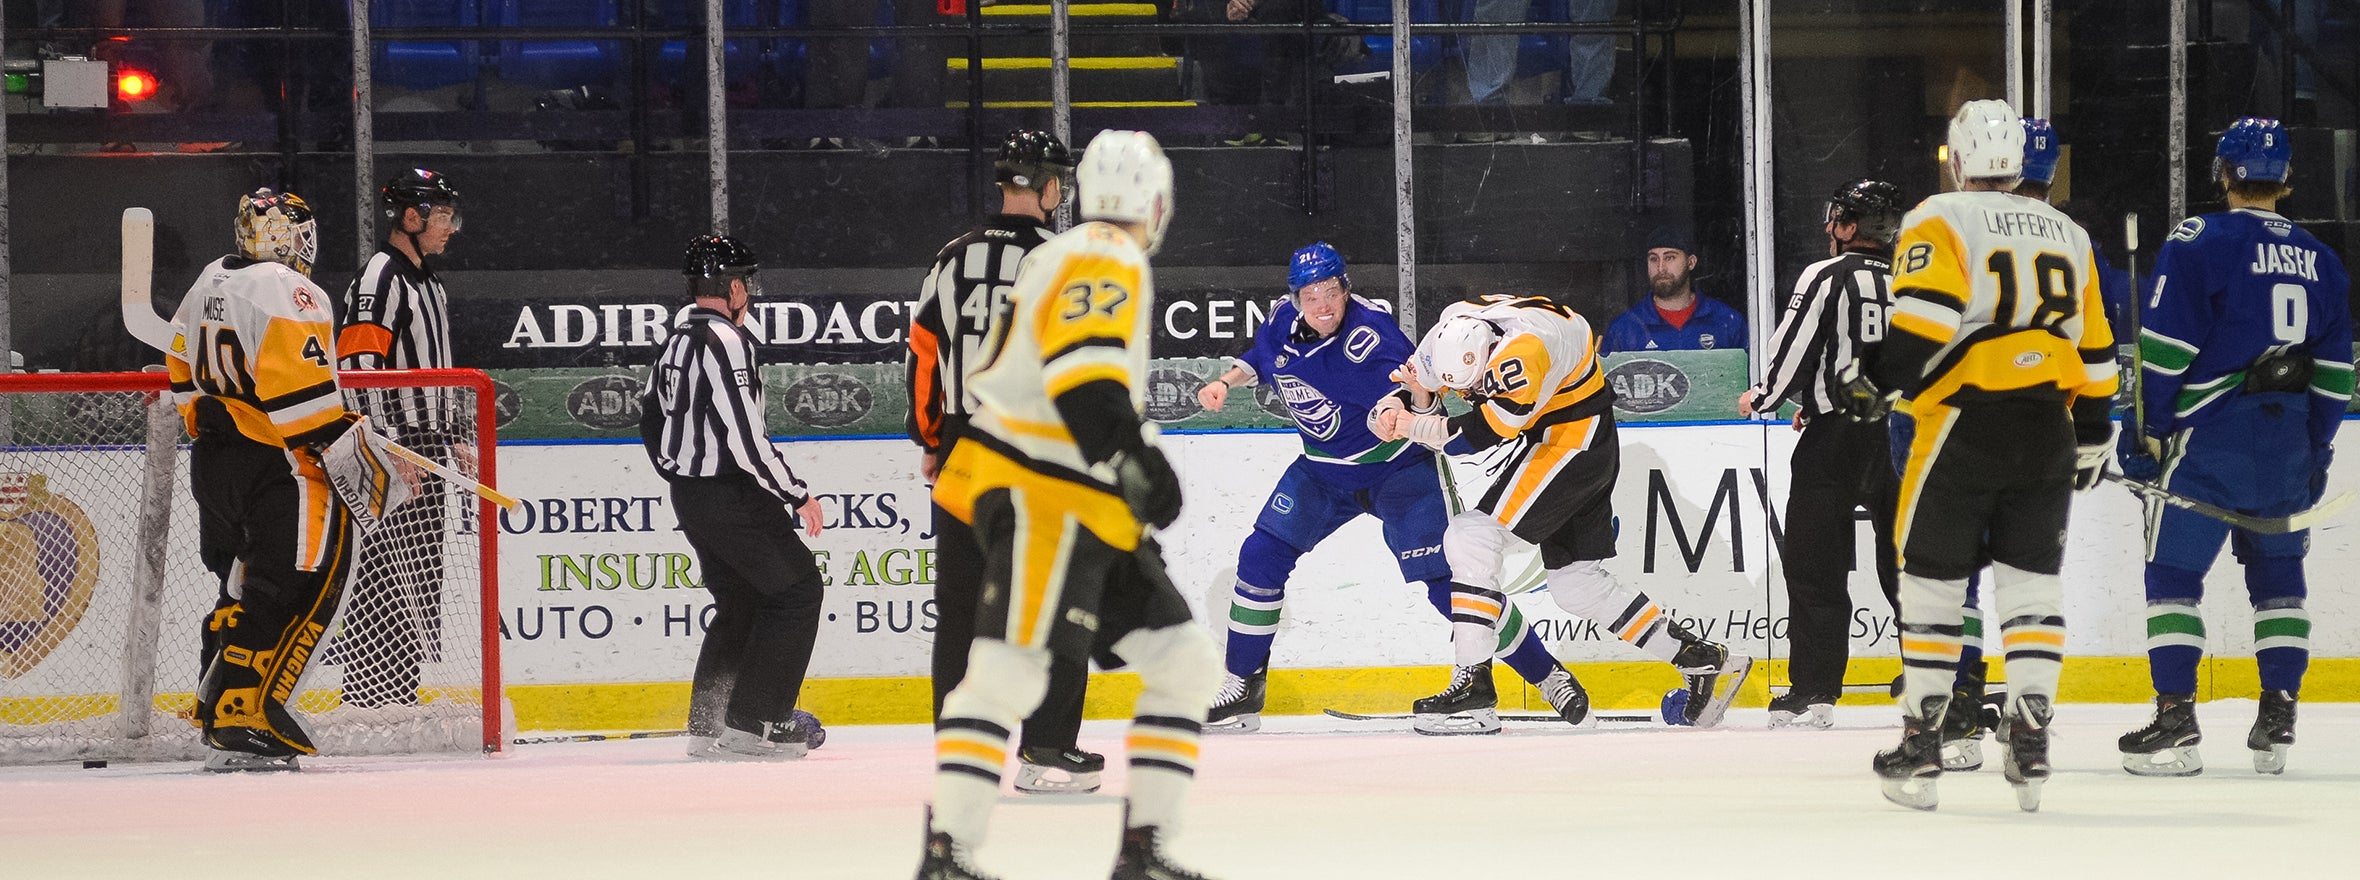 BOUCHER'S HAT TRICK LEADS COMETS TO WILD WIN